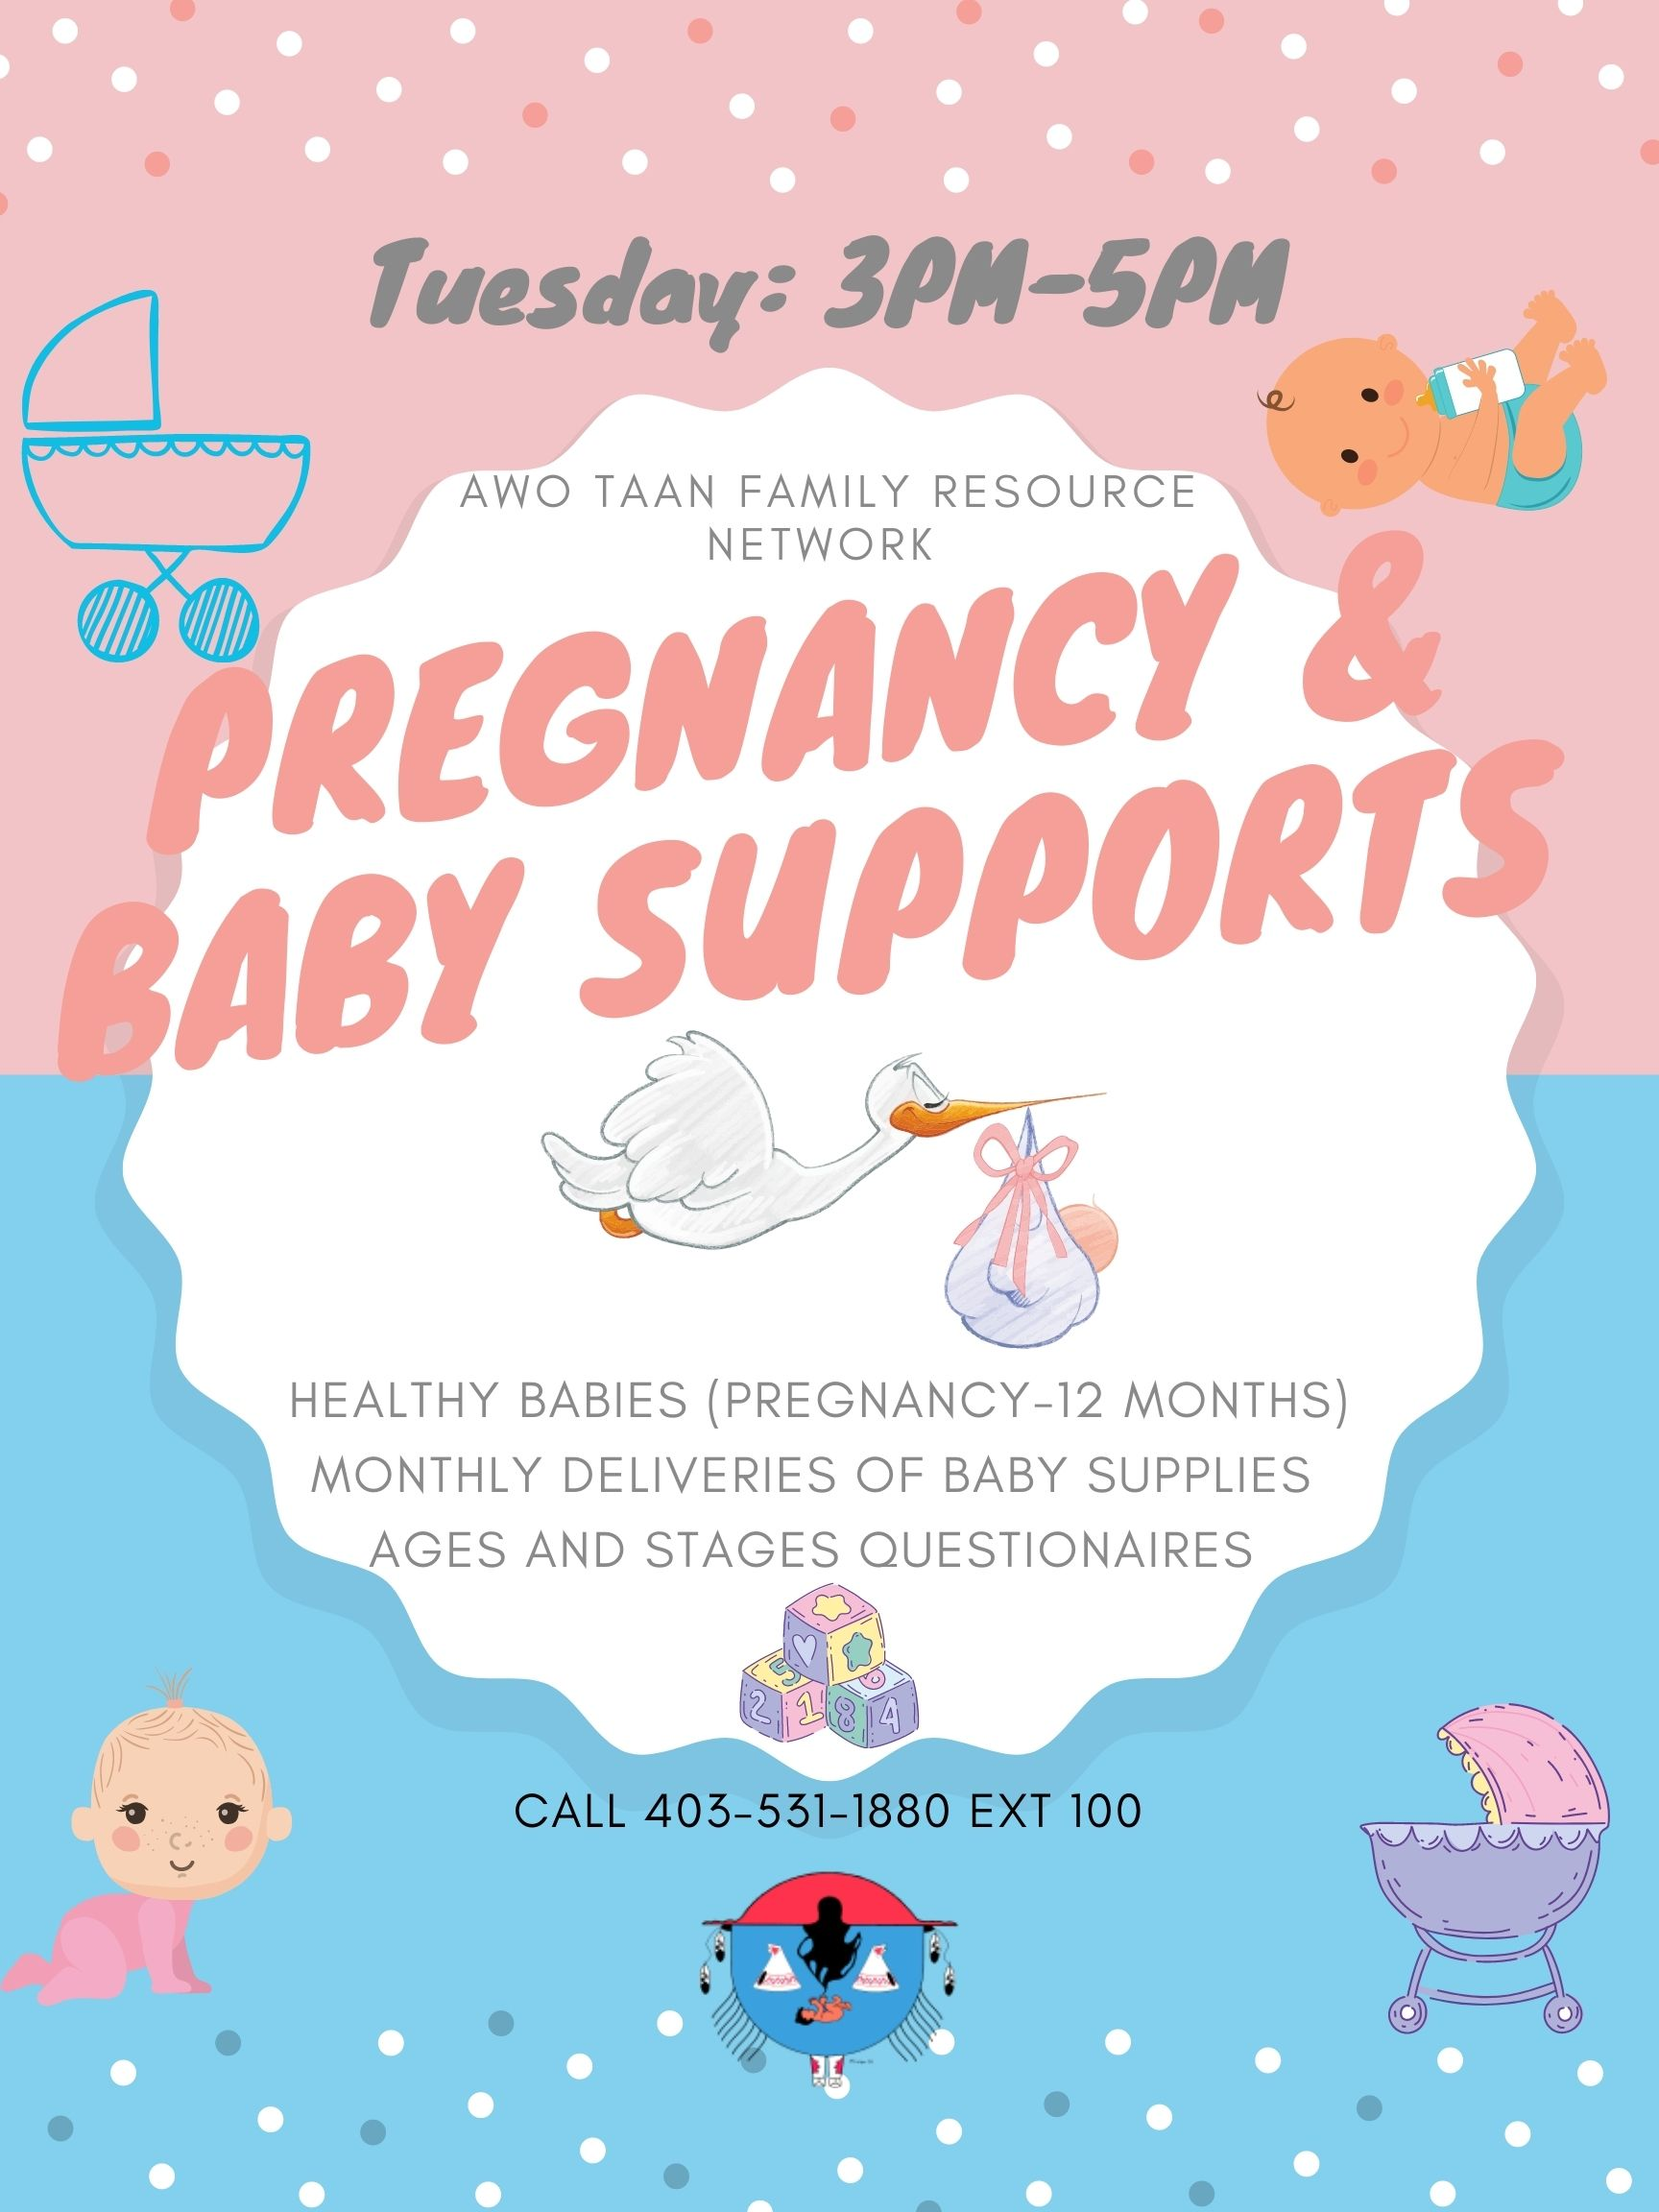 Pregnancy & Baby Supports | Awo Taan Family Resource Network